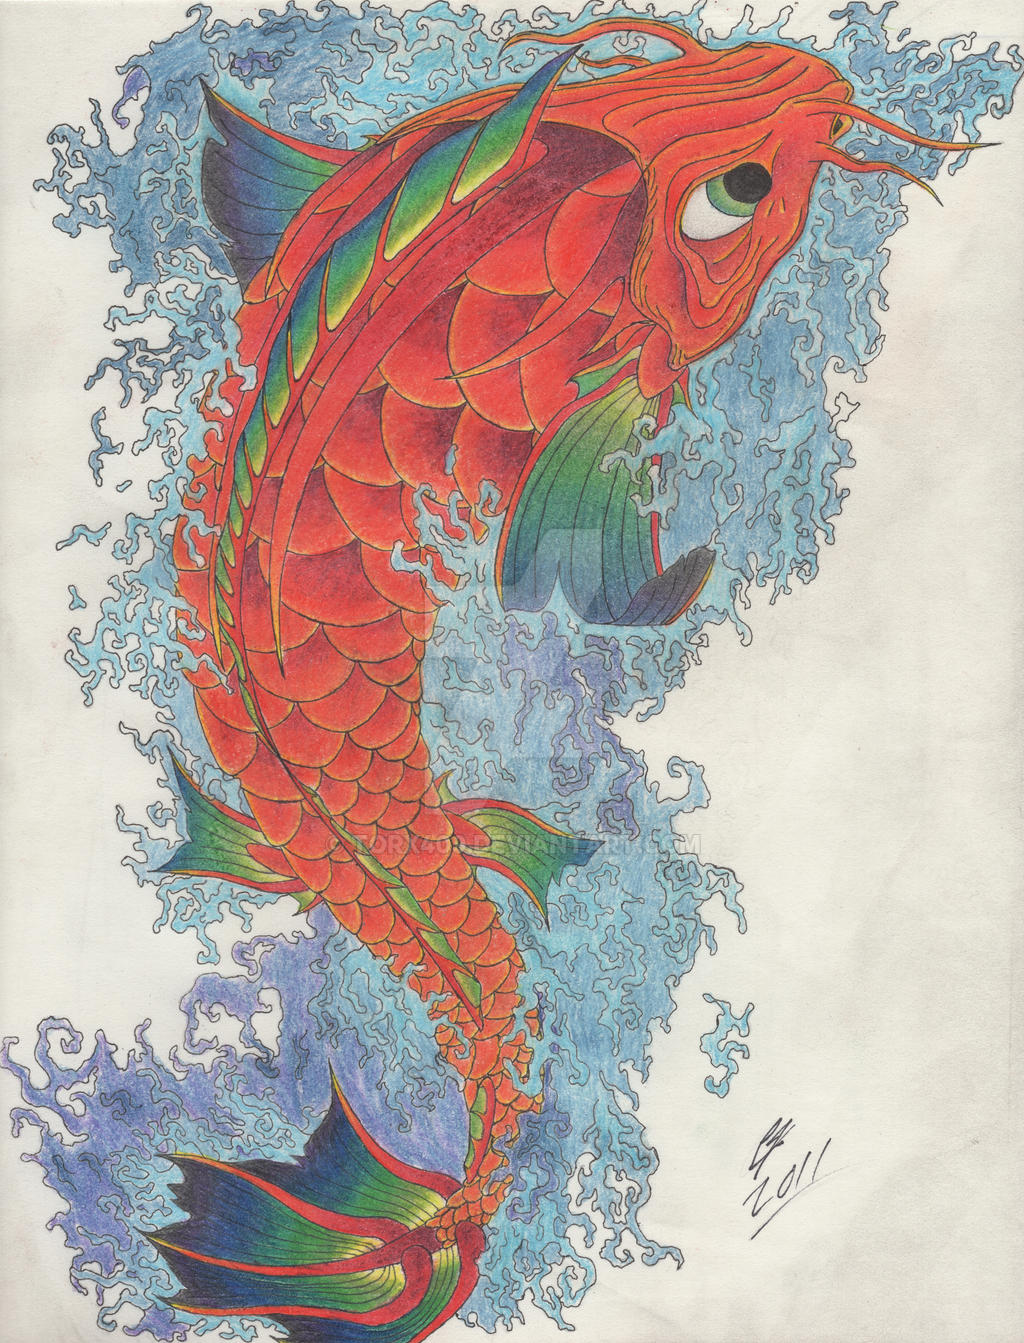 Koi Fish Hi Res By Torx409 On Deviantart